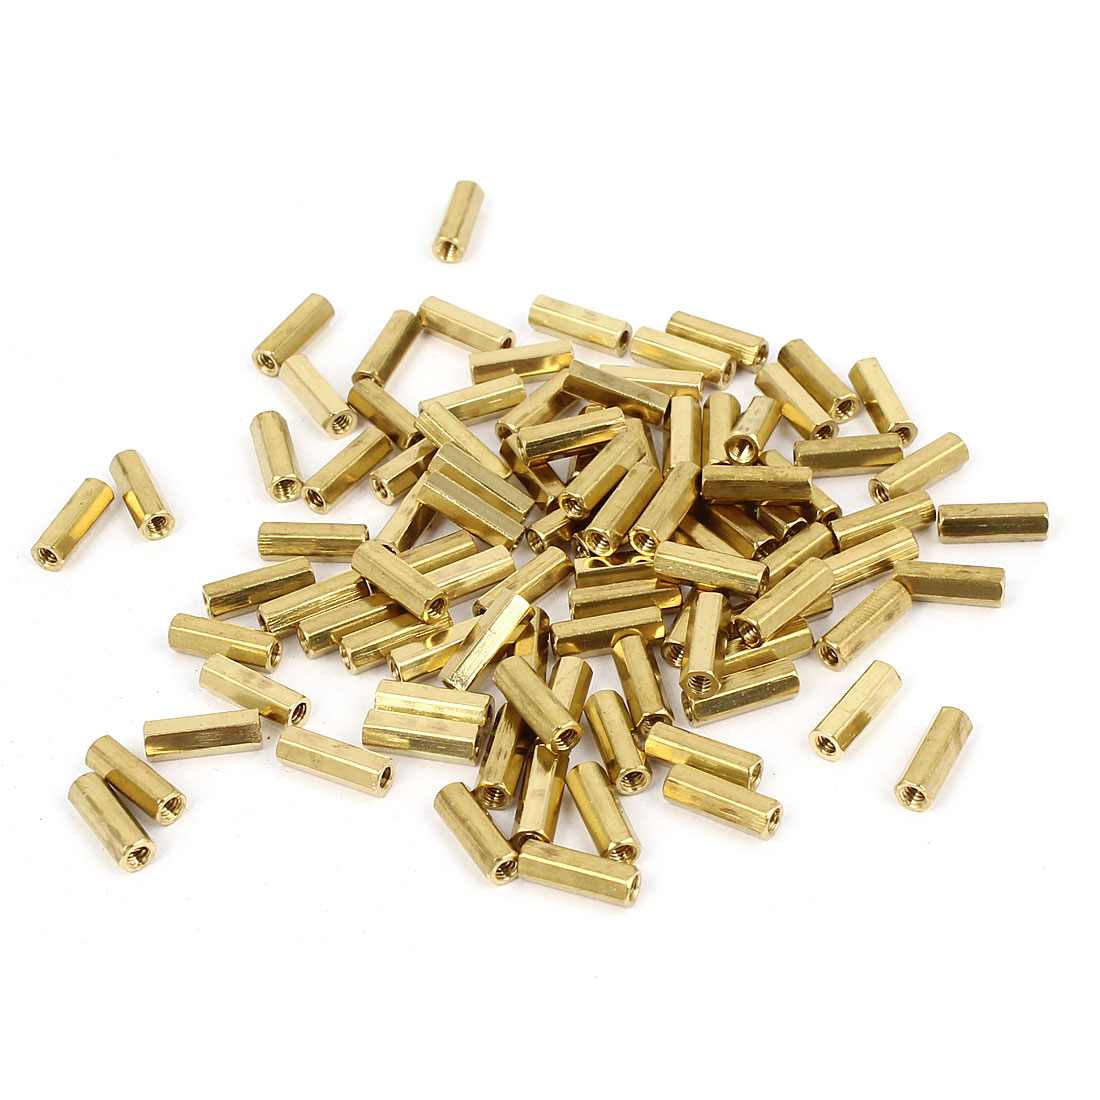 100 Pcs M2 Female Thread Brass Pillar Standoff Hexagonal Spacer 9mm Length